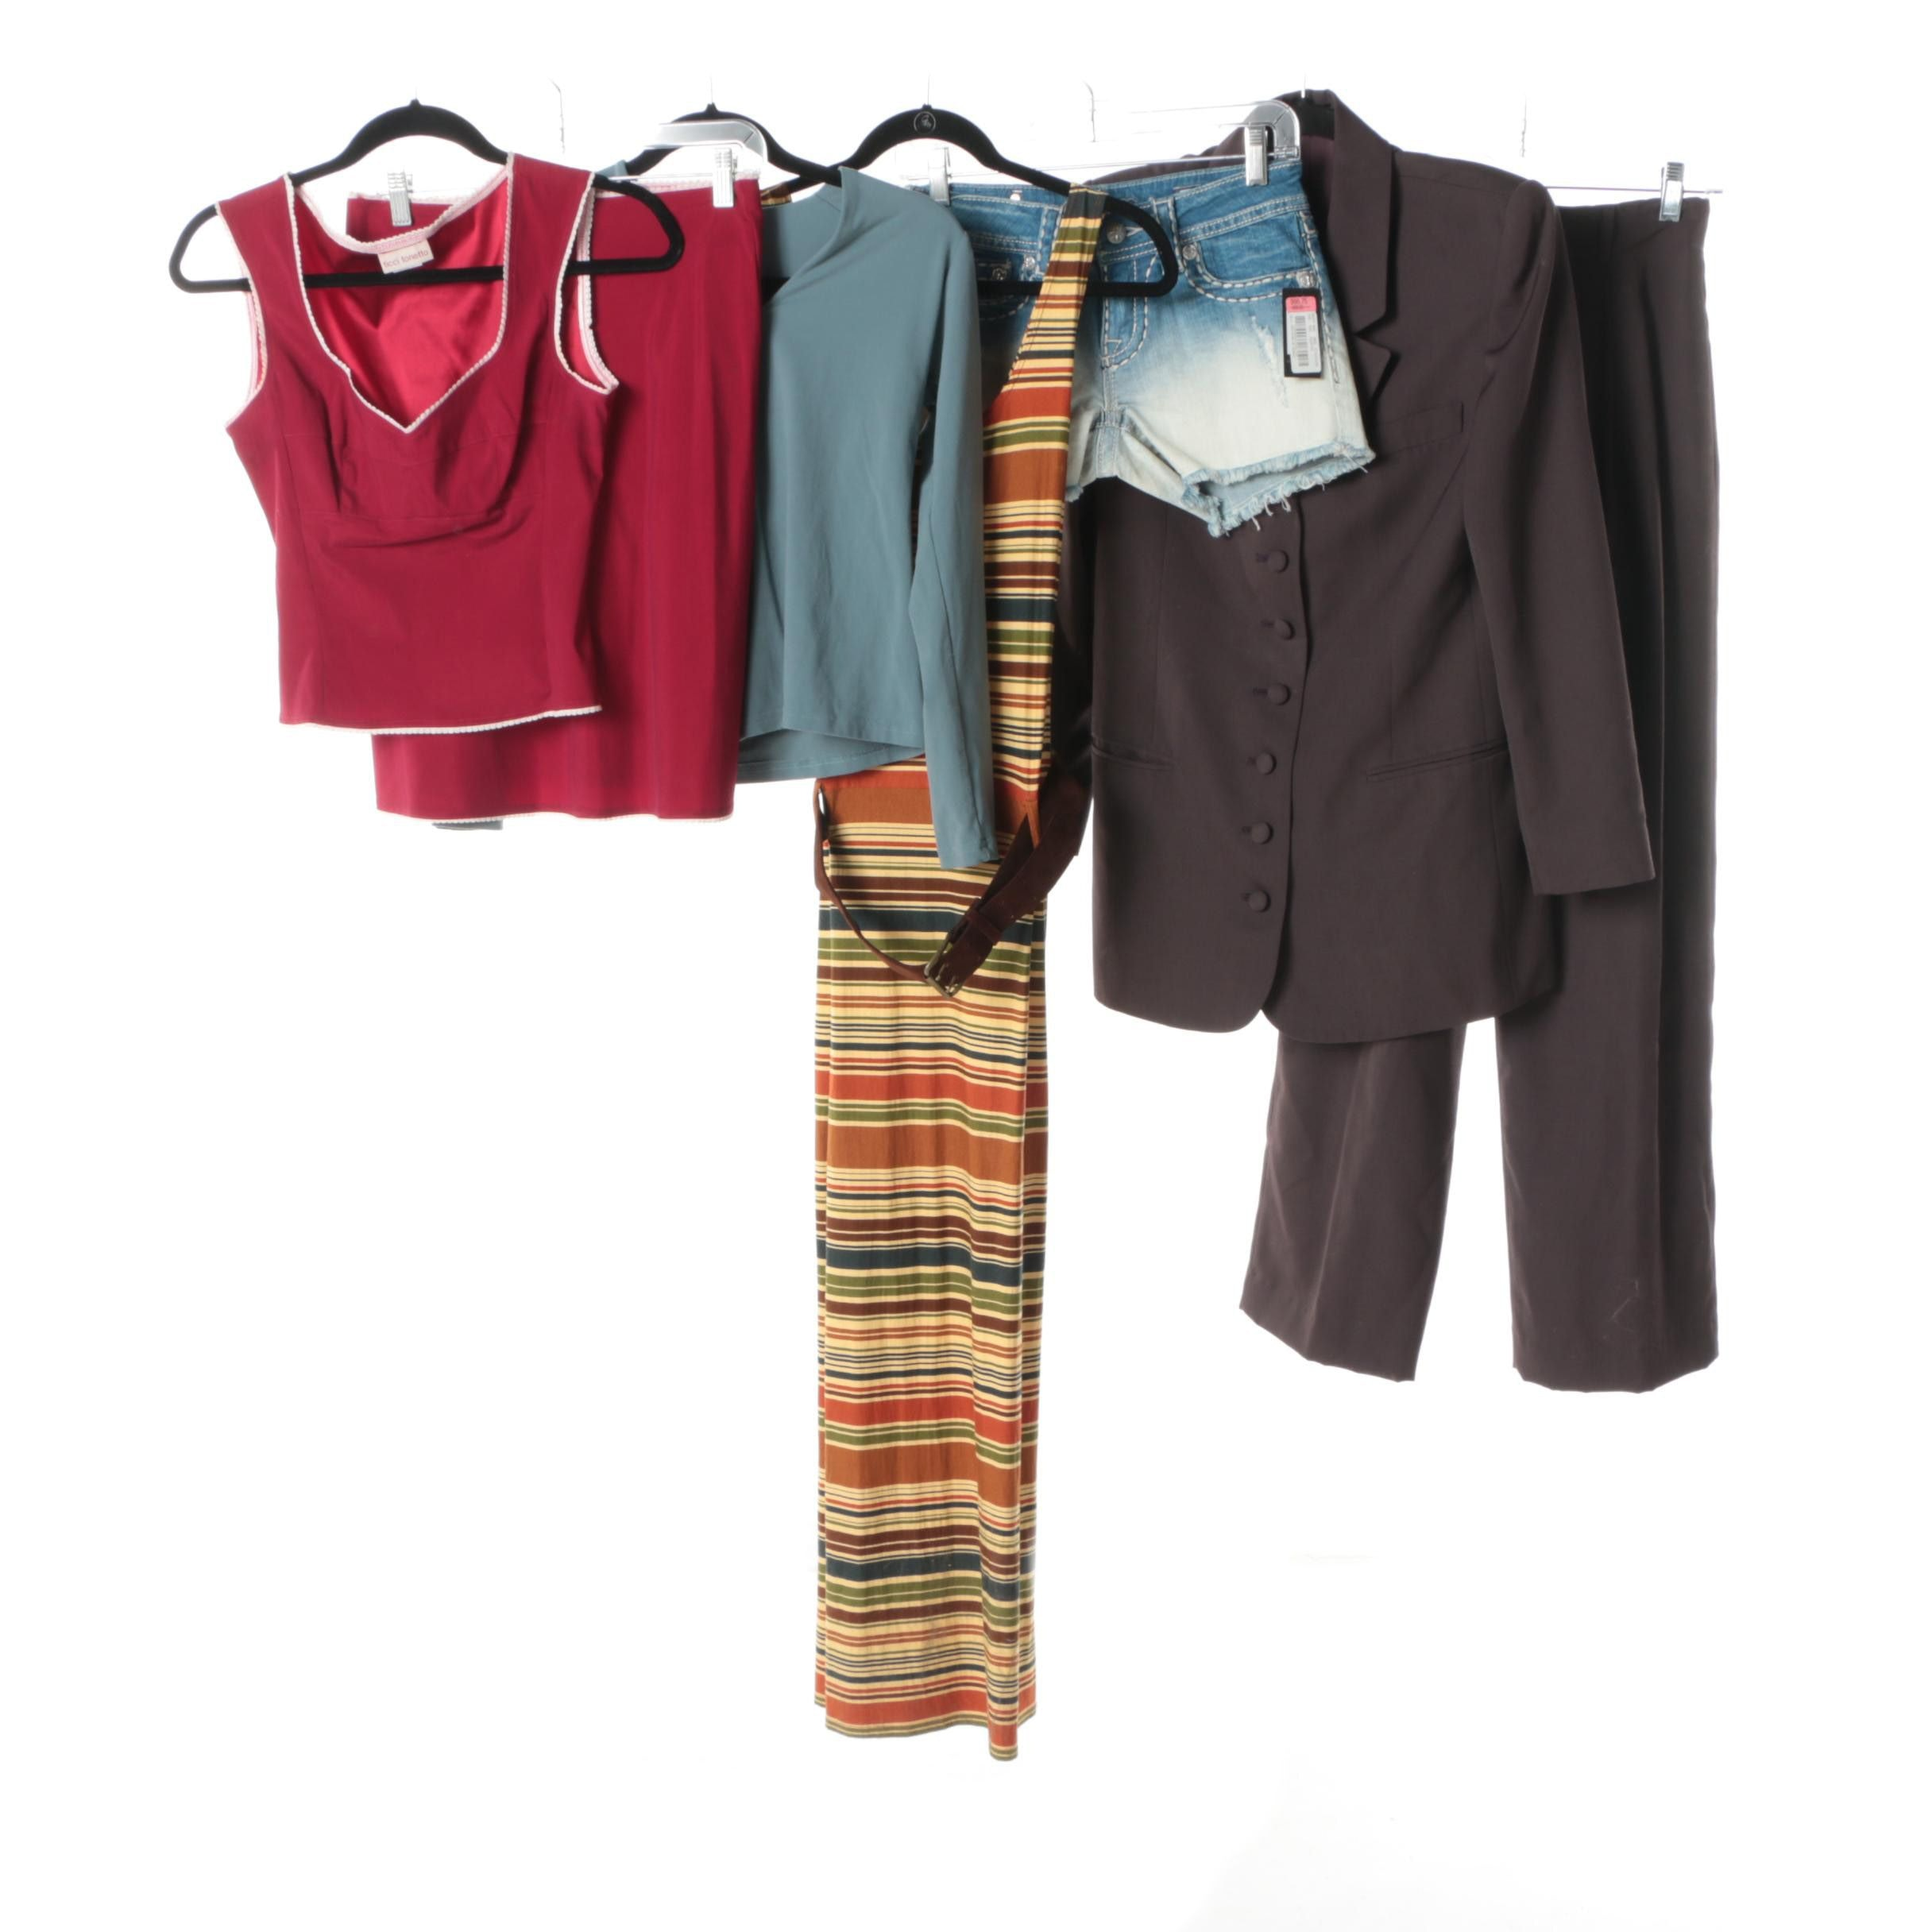 Women's Dress and Separates Including Ticci Tonetto and Susana Monoco